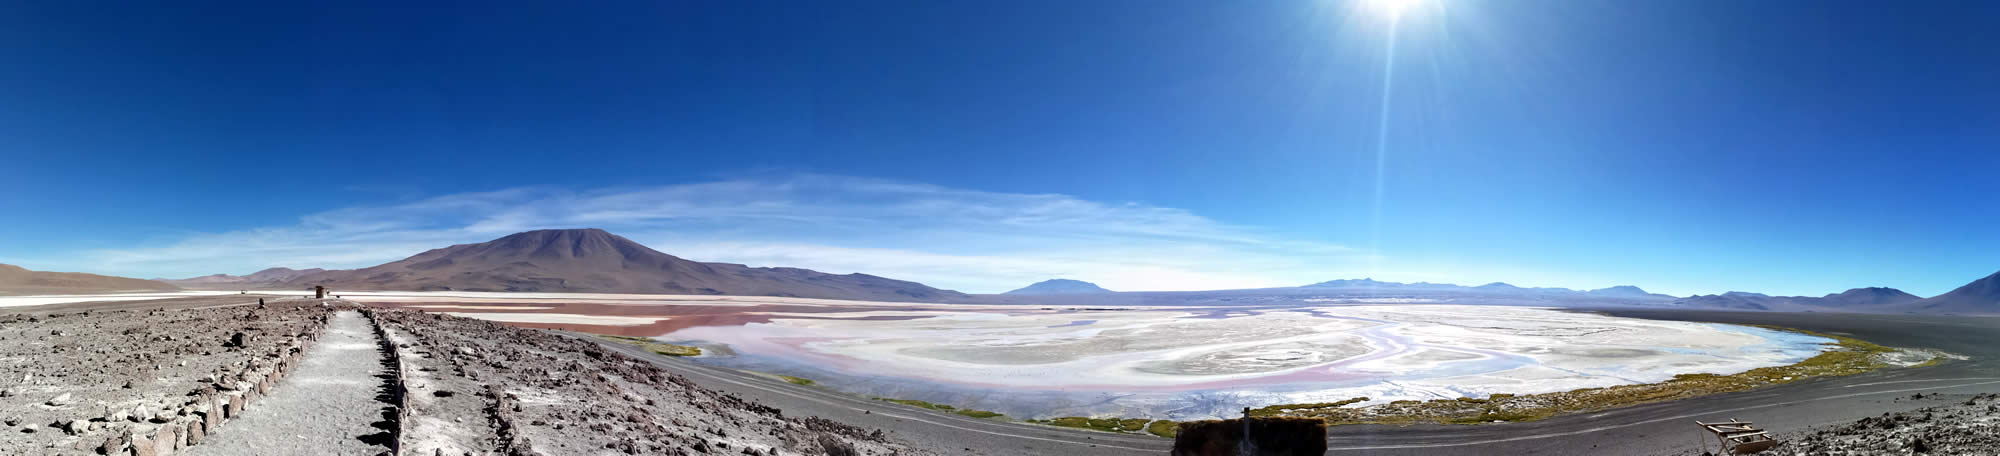 Red Lagoon, Laguna Colorada, Uyuni